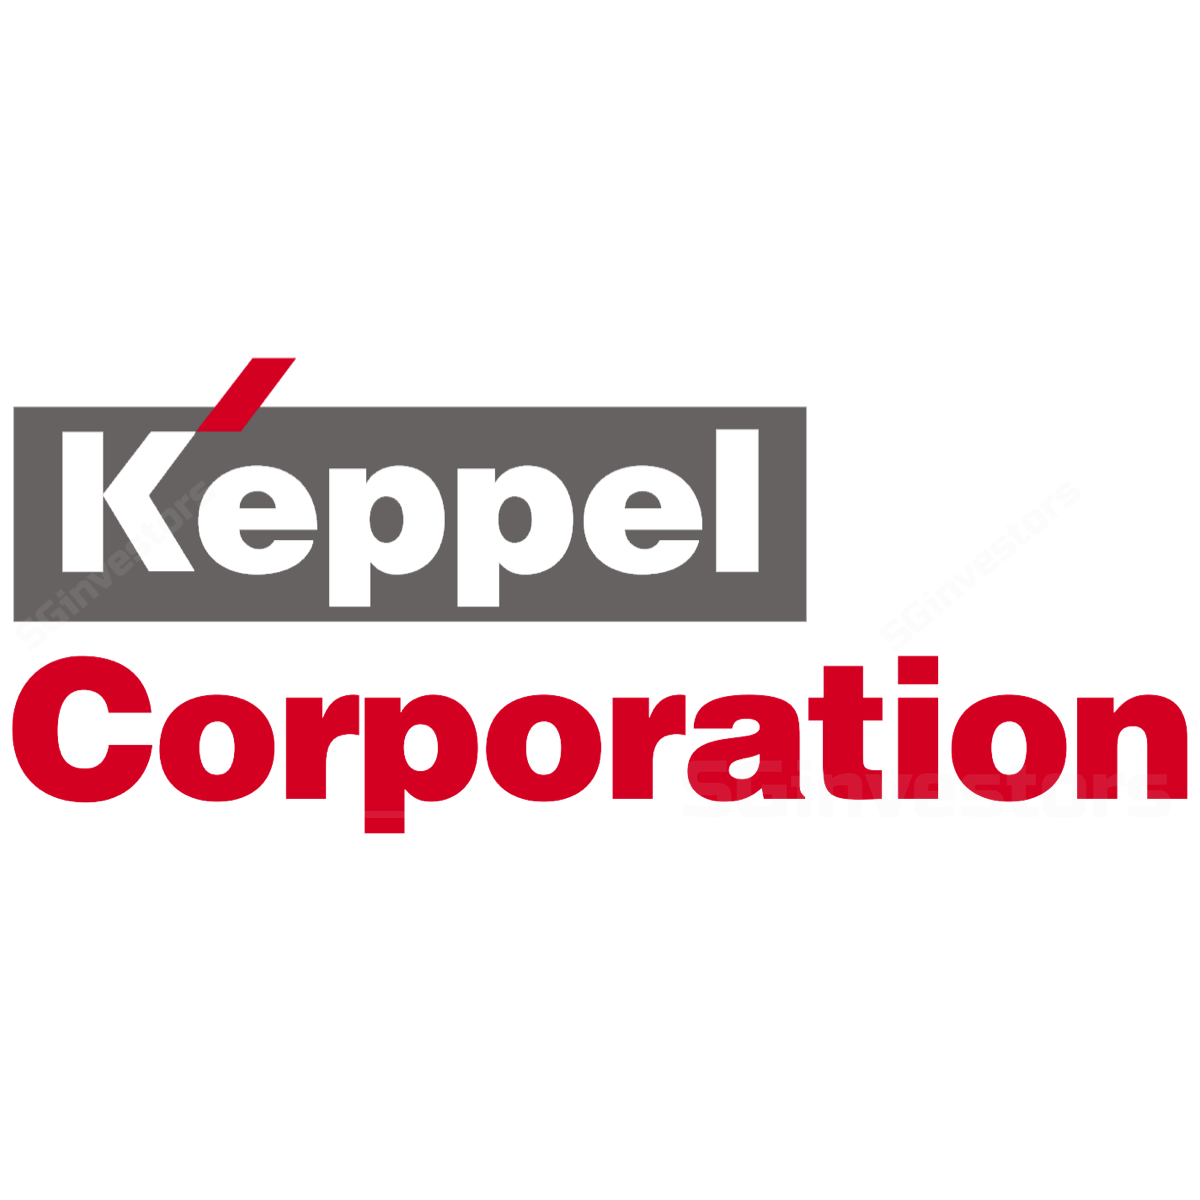 Keppel Corp - RHB Invest 2017-01-03: Infrastructure And Utilities To Provide Resilience